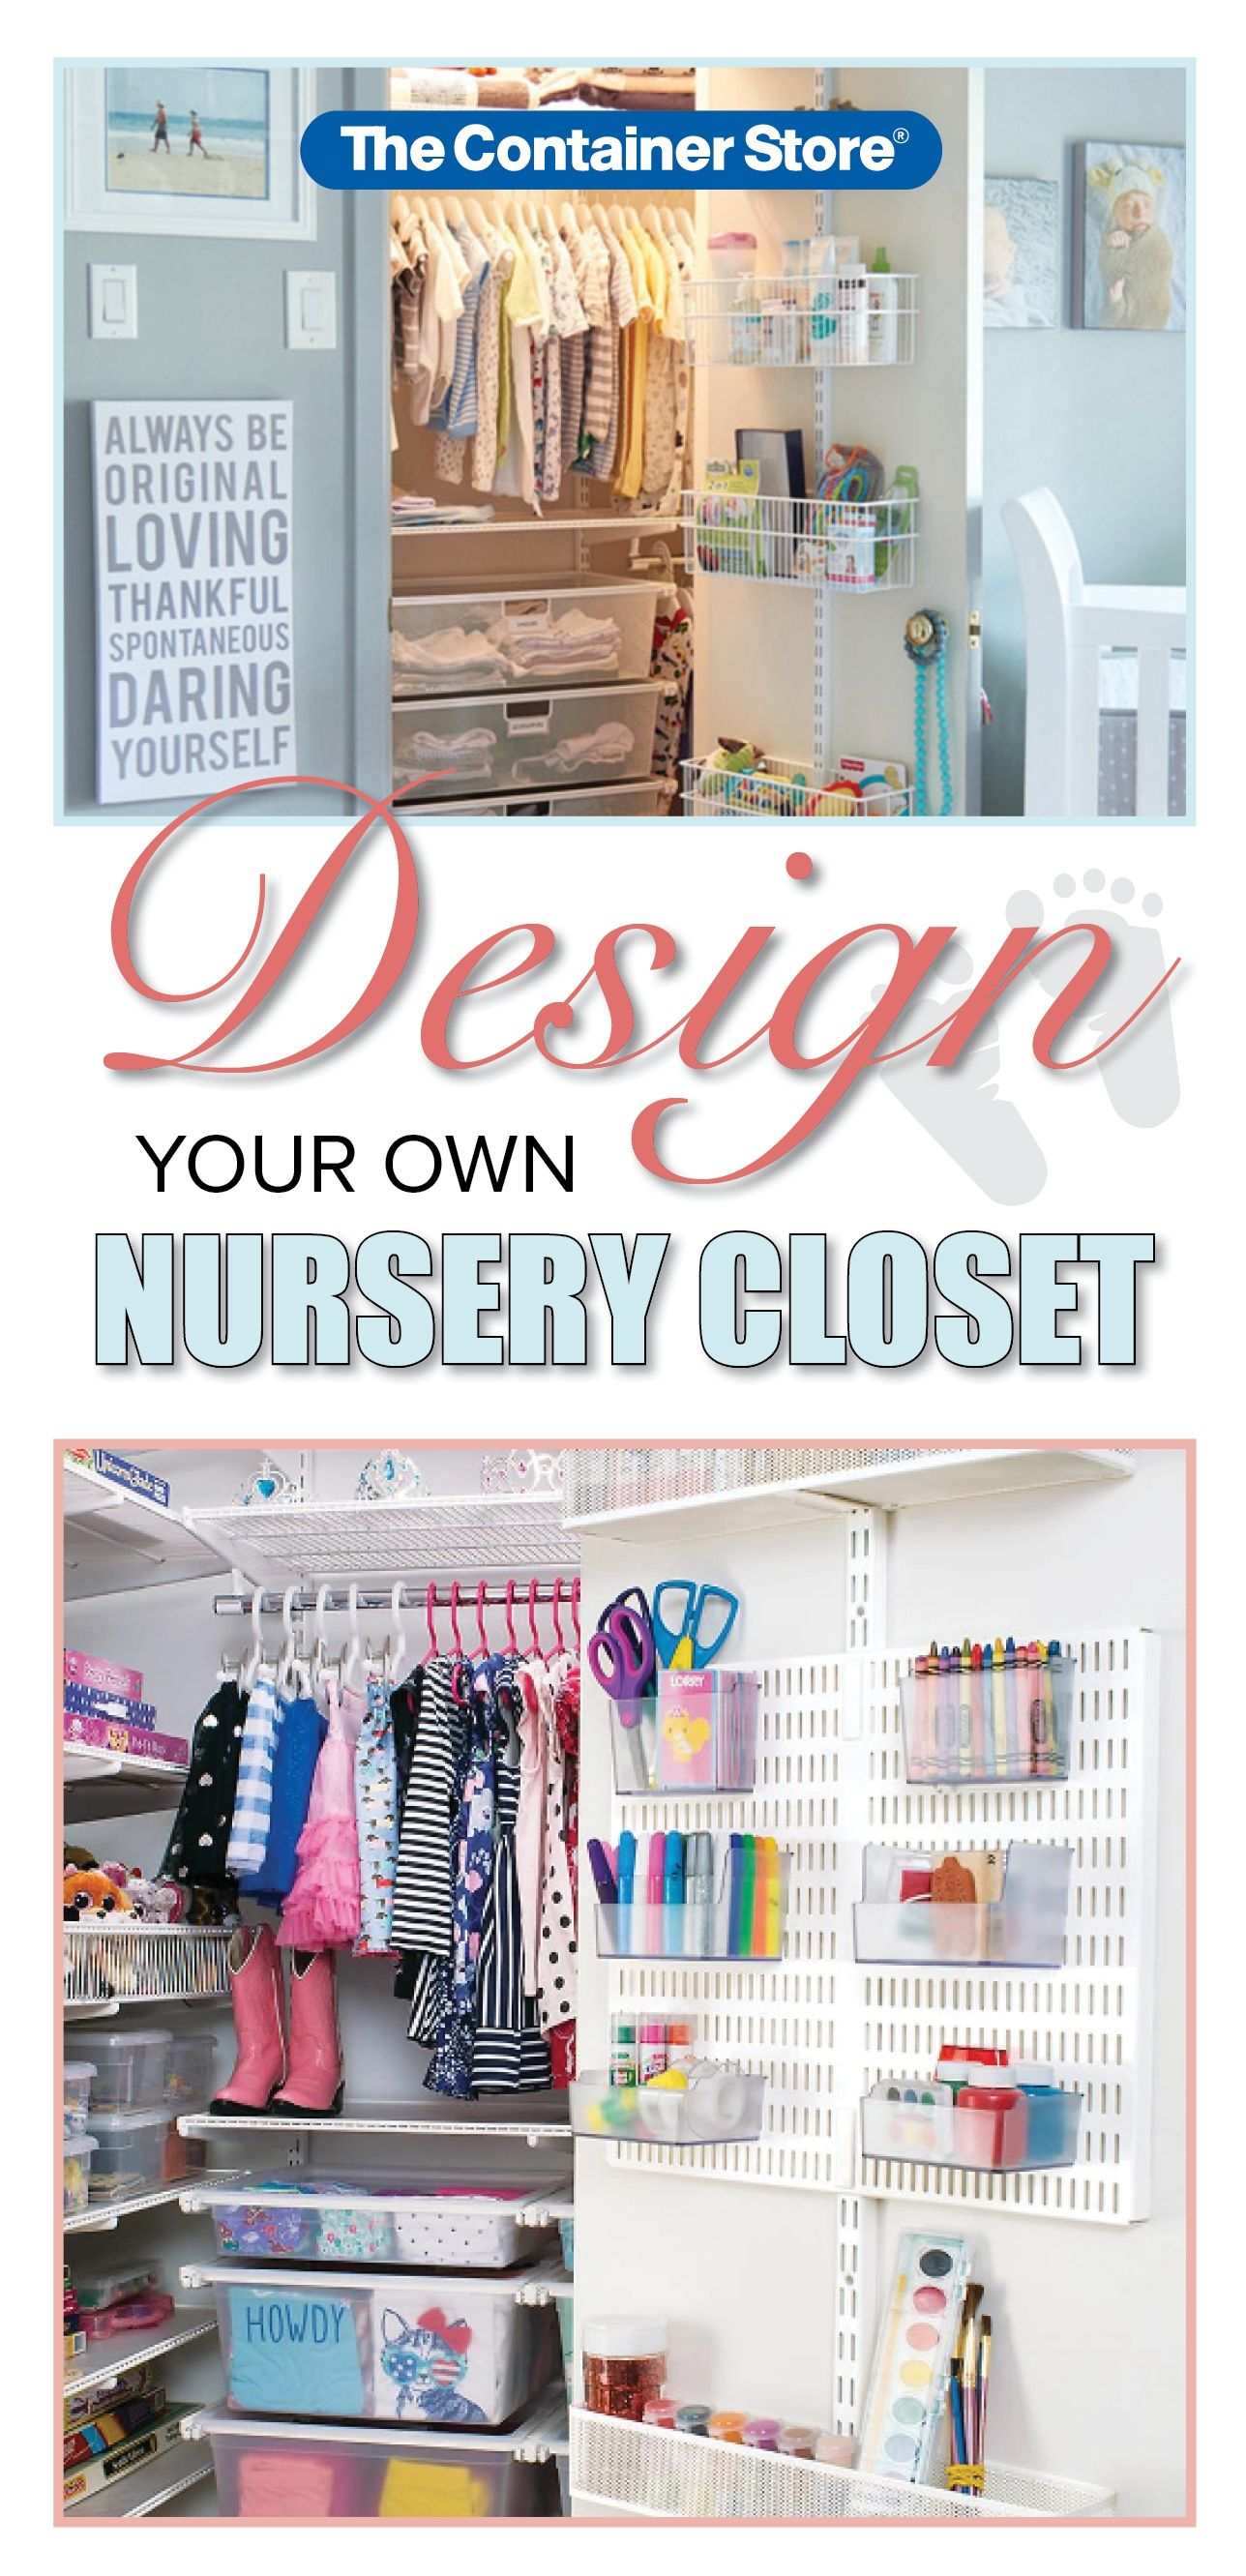 Nursery Closet Systems Like Elfa Can Give Structure And Organization To Your Entire